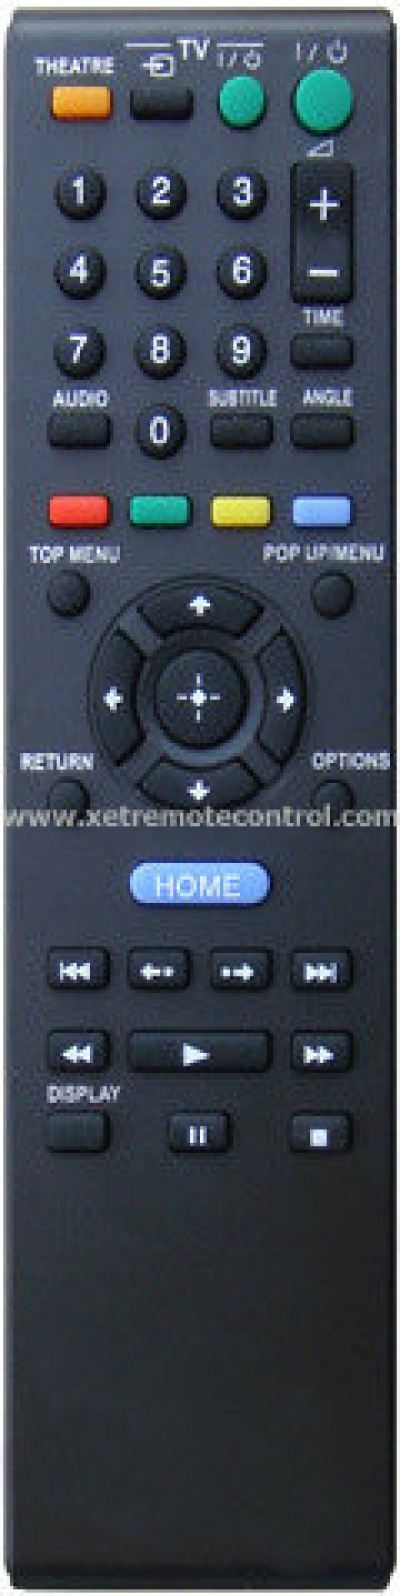 RMT-D109P SONY BLU-RAY DVD REMOTE CONTROL